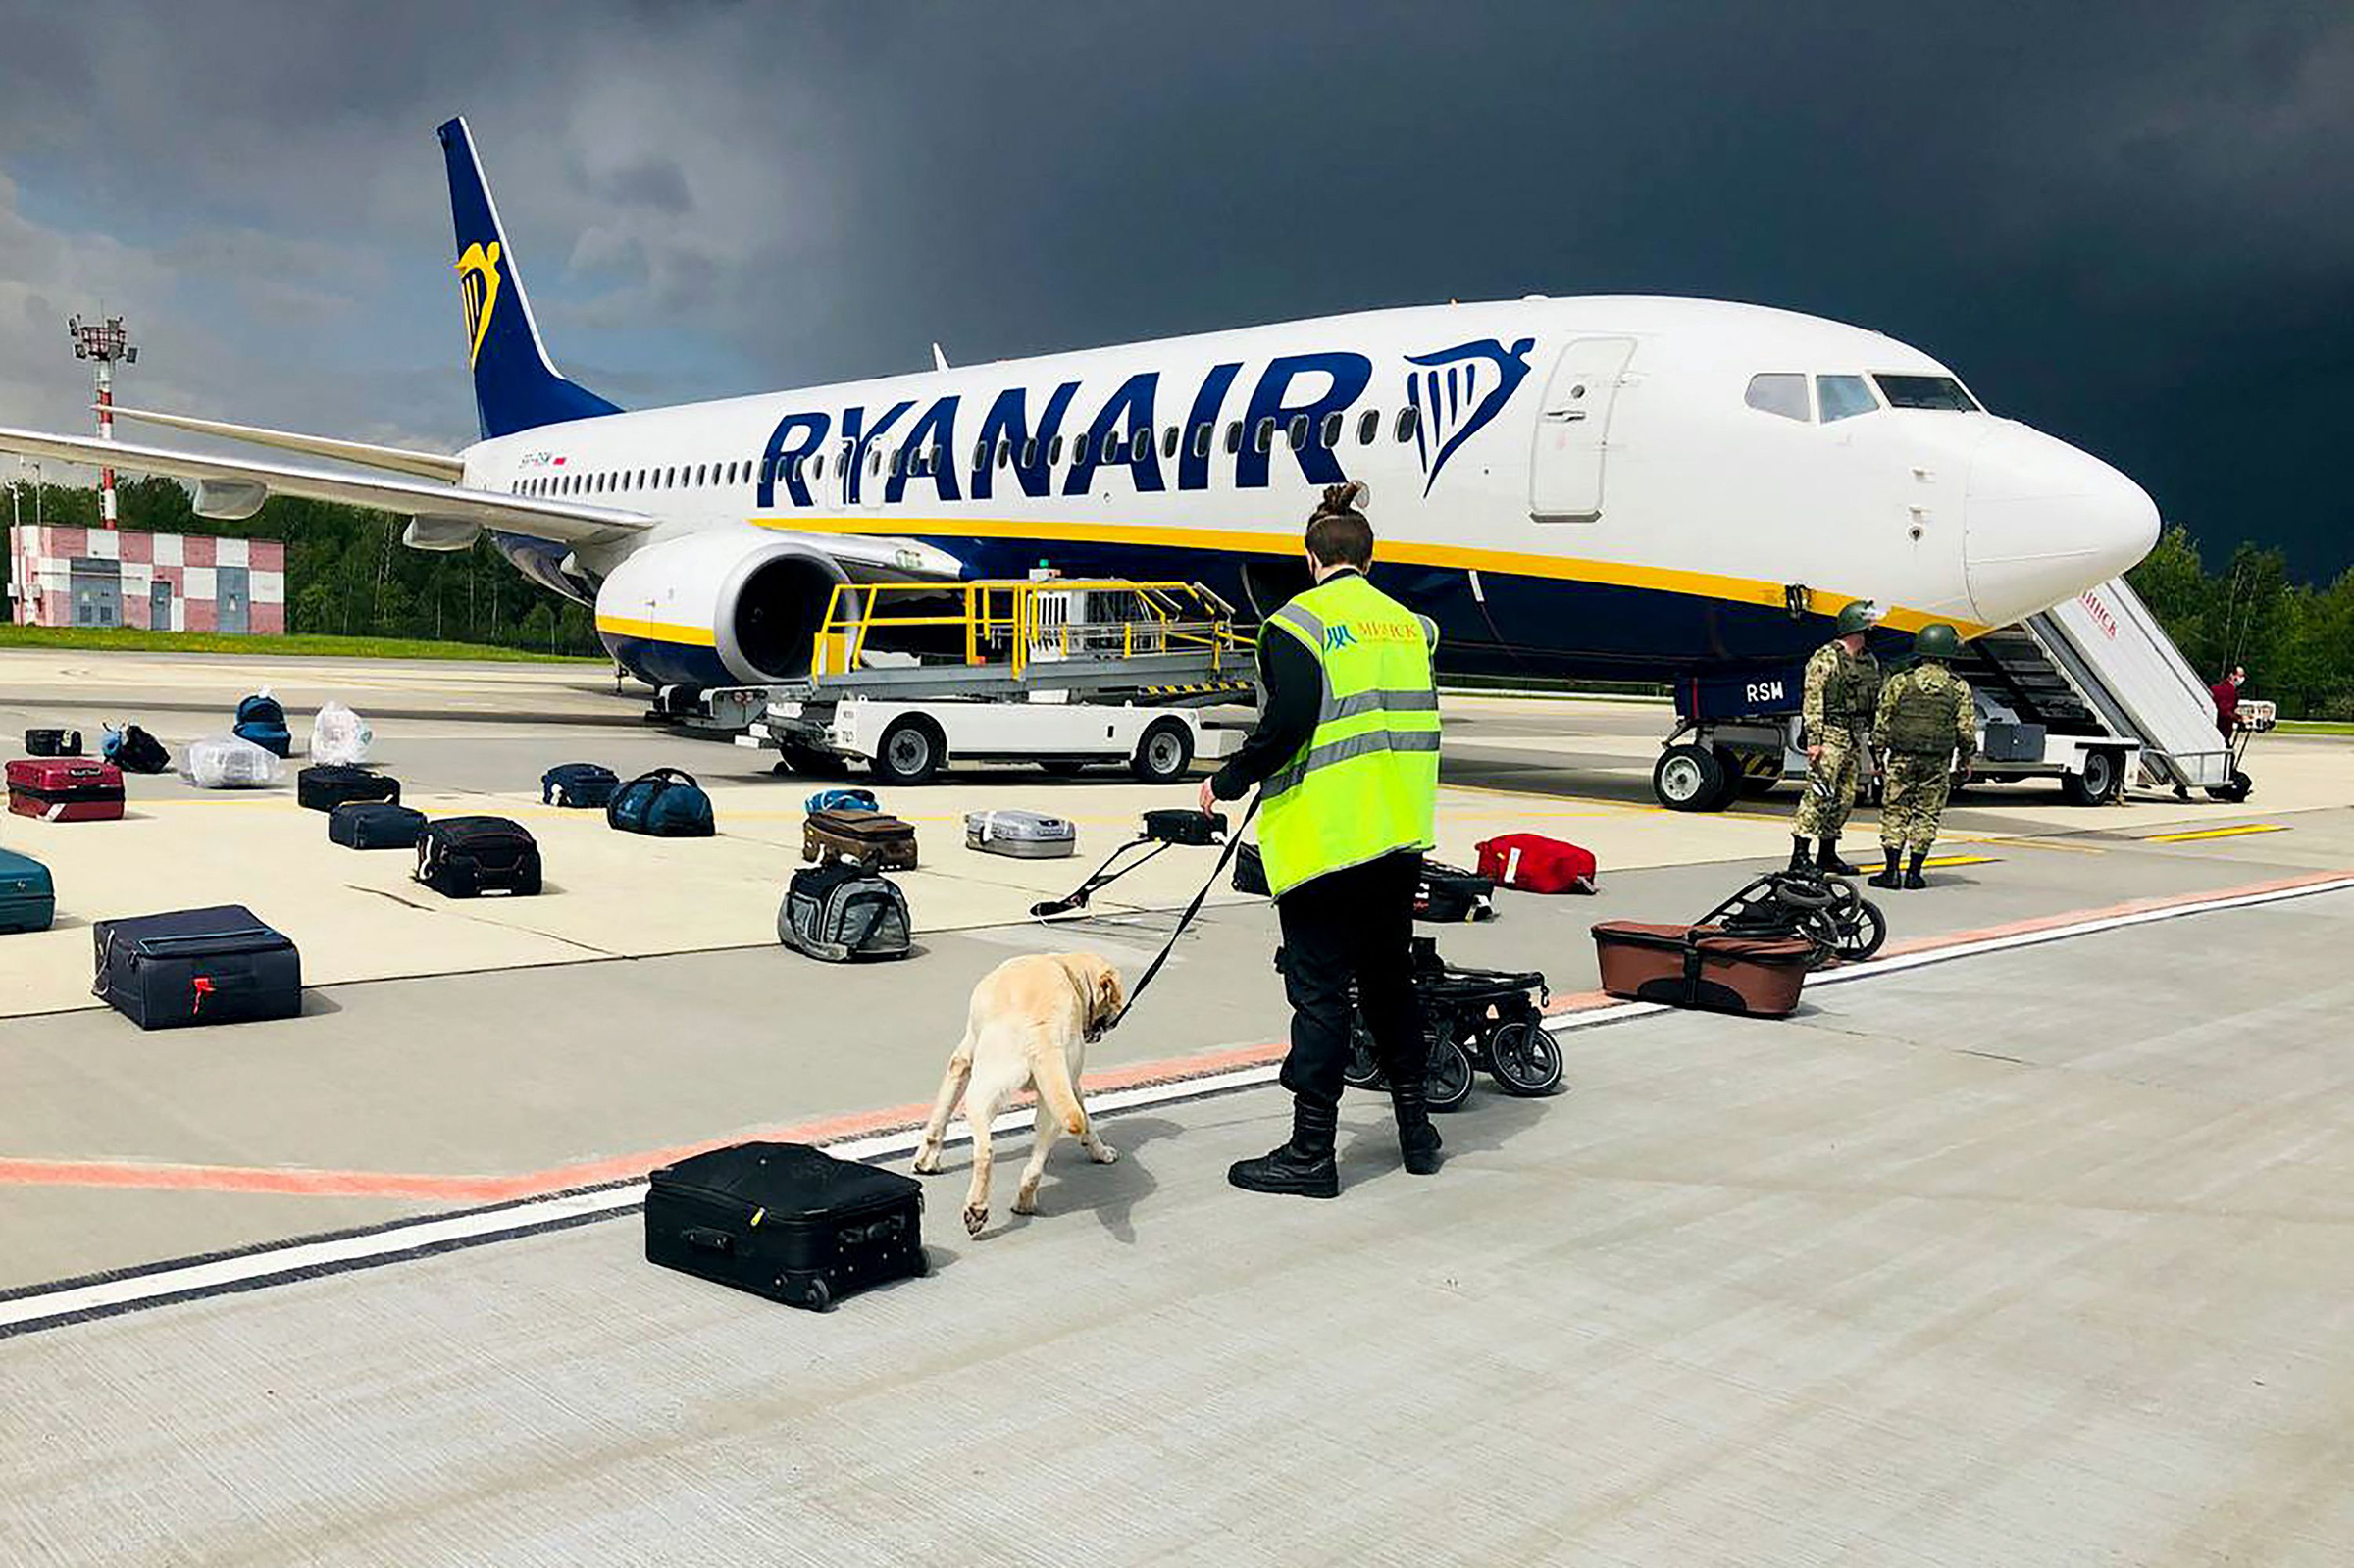 A Belarusian dog handler checks luggage after the Ryanair flight landed in Minsk on May 23.